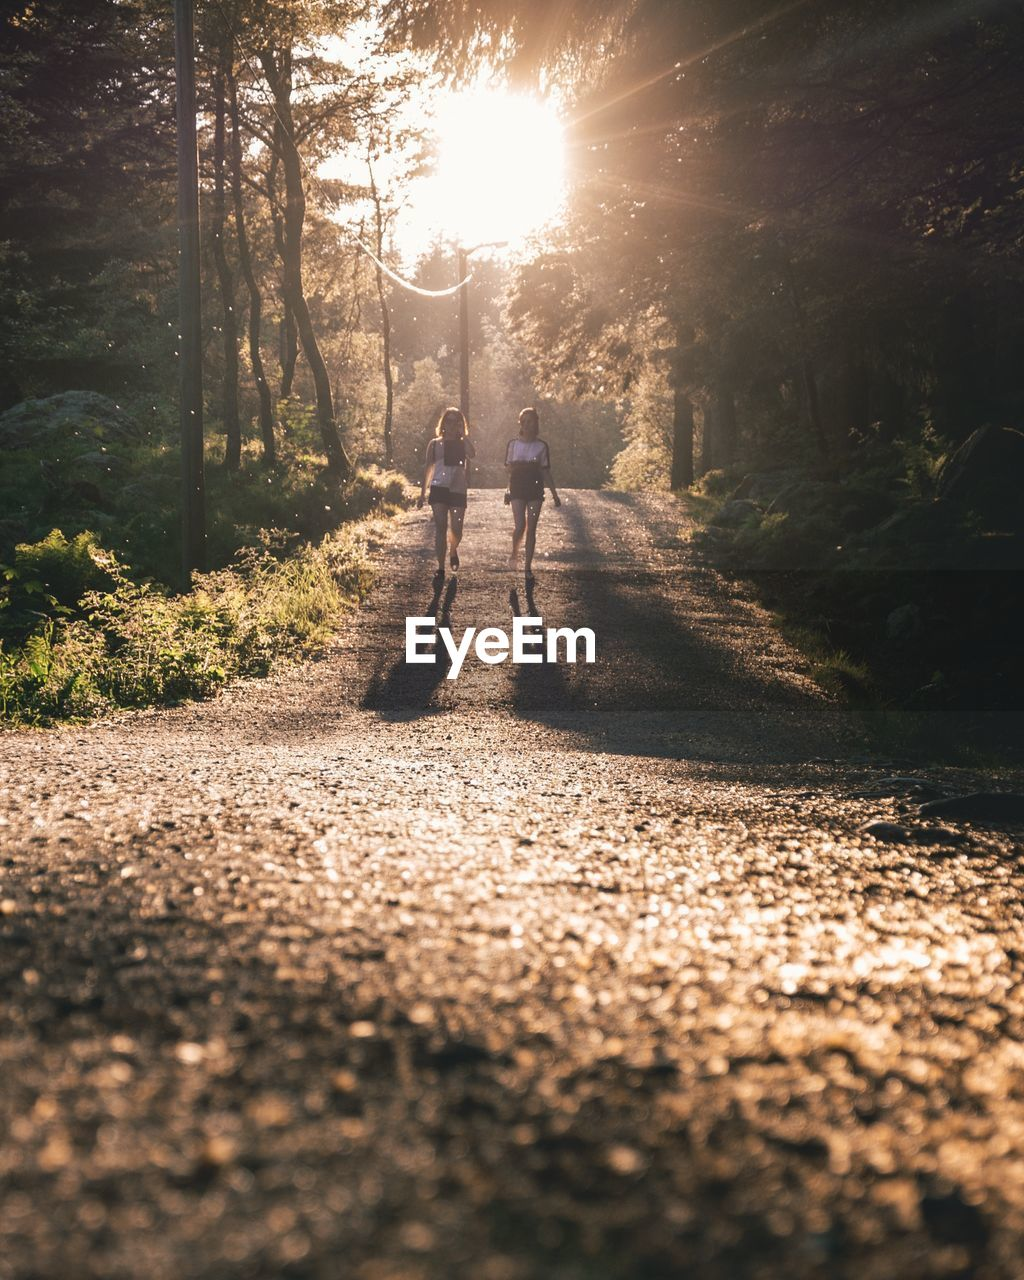 Full Length Of Friends Walking On Road Amidst Trees In Forest During Sunny Day